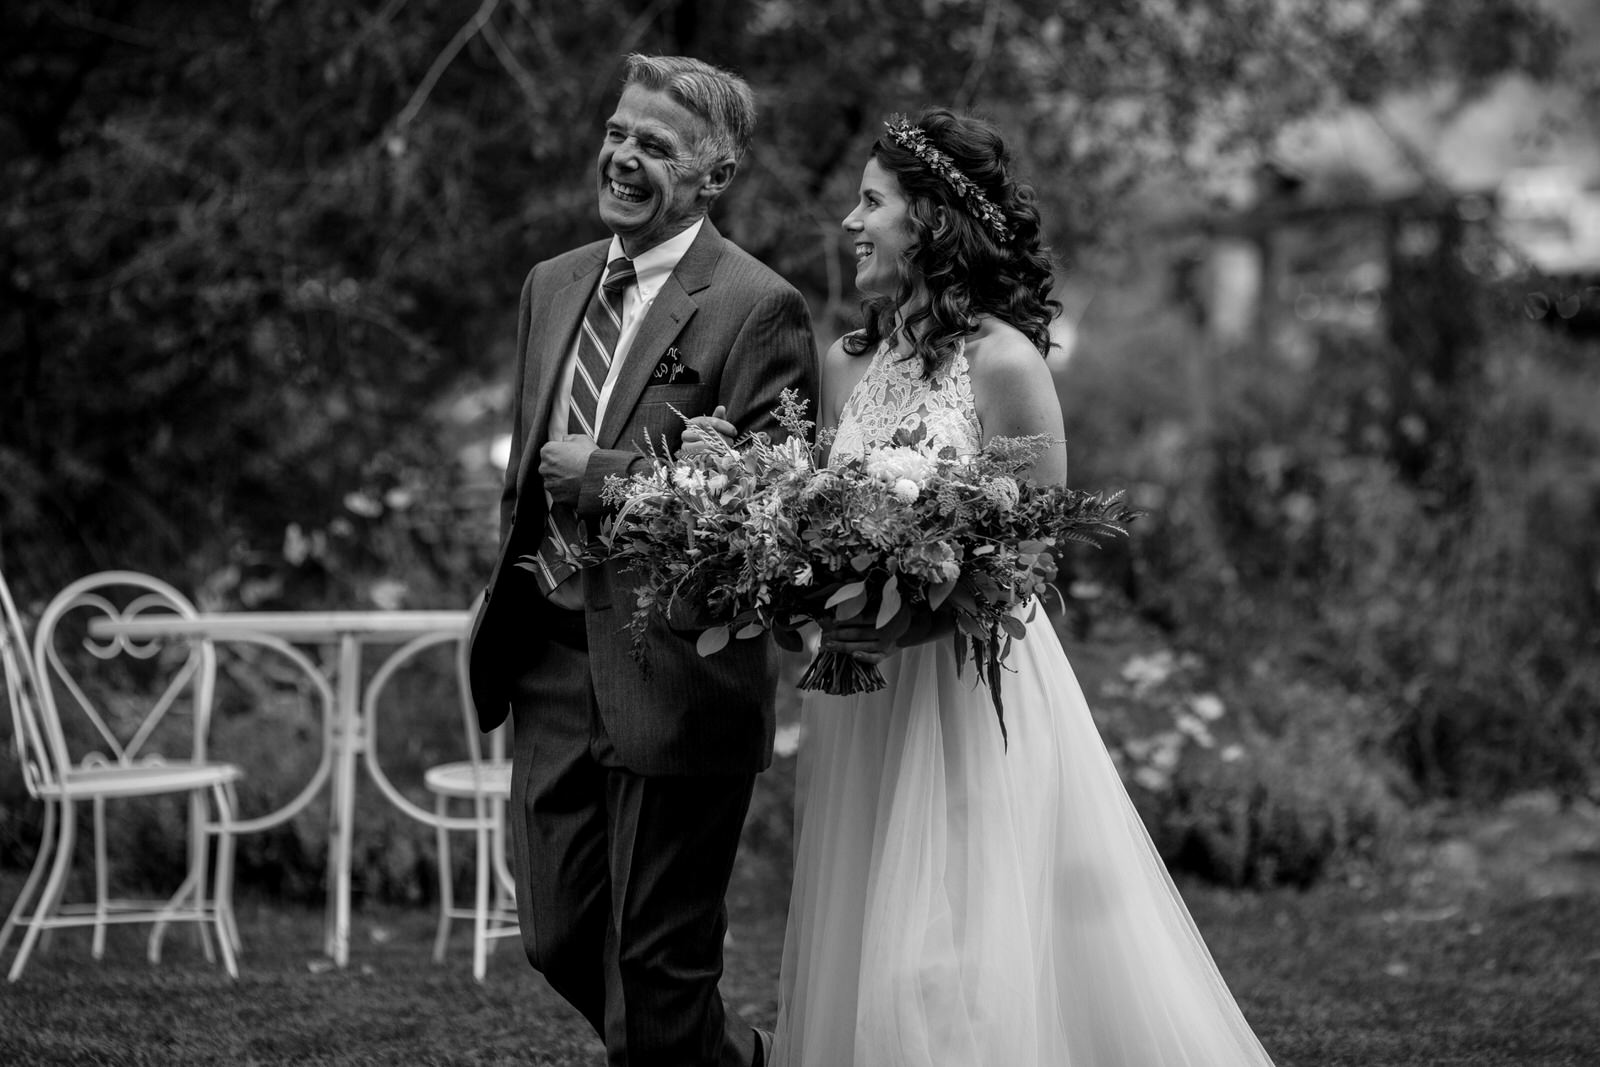 in black and white bride and her father laughing as they walk down the aisle at an outdoor wedding